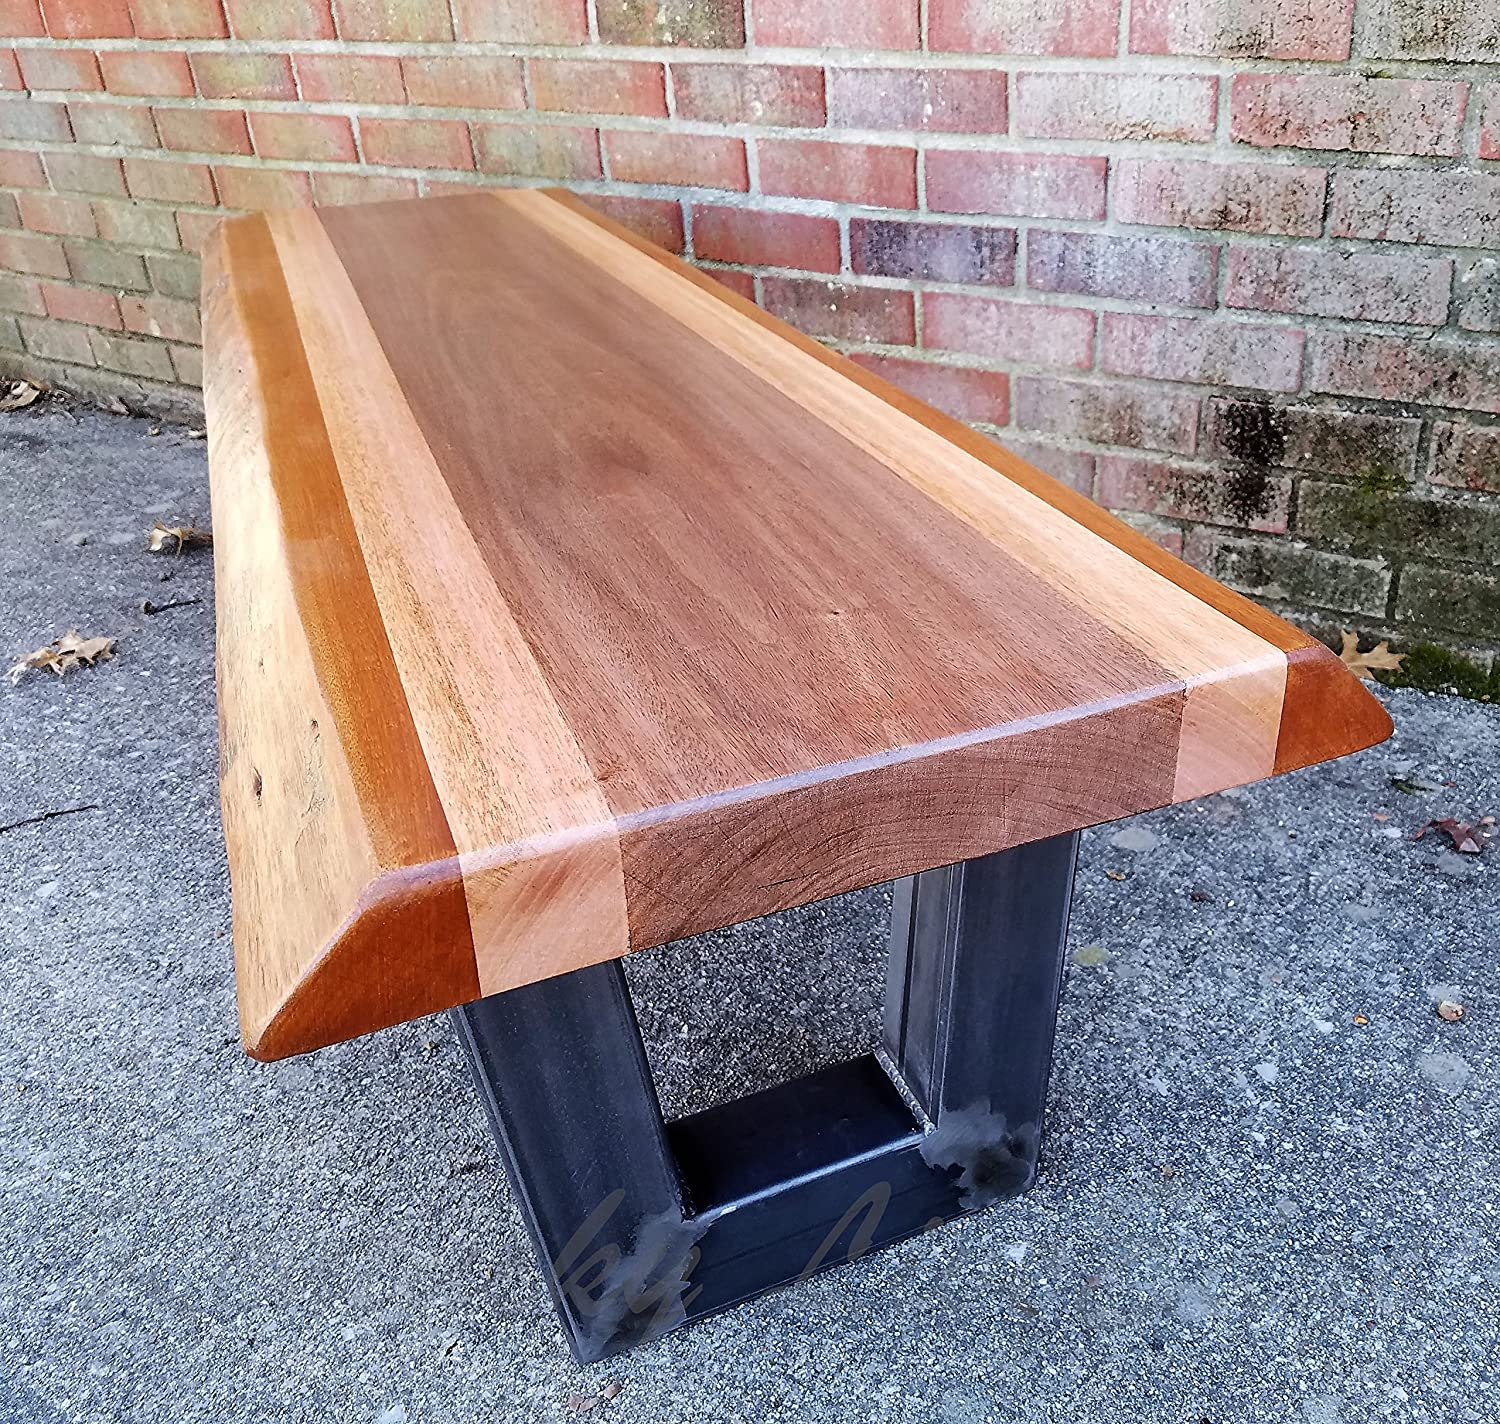 - Amazon.com: Live Edge Mahogany Coffee Table- Live Edge Bench- Steel Legs-  Industrial- Modern- Rustic- Stripes- Natural Wood- Furniture- Brown And  Tan: Handmade